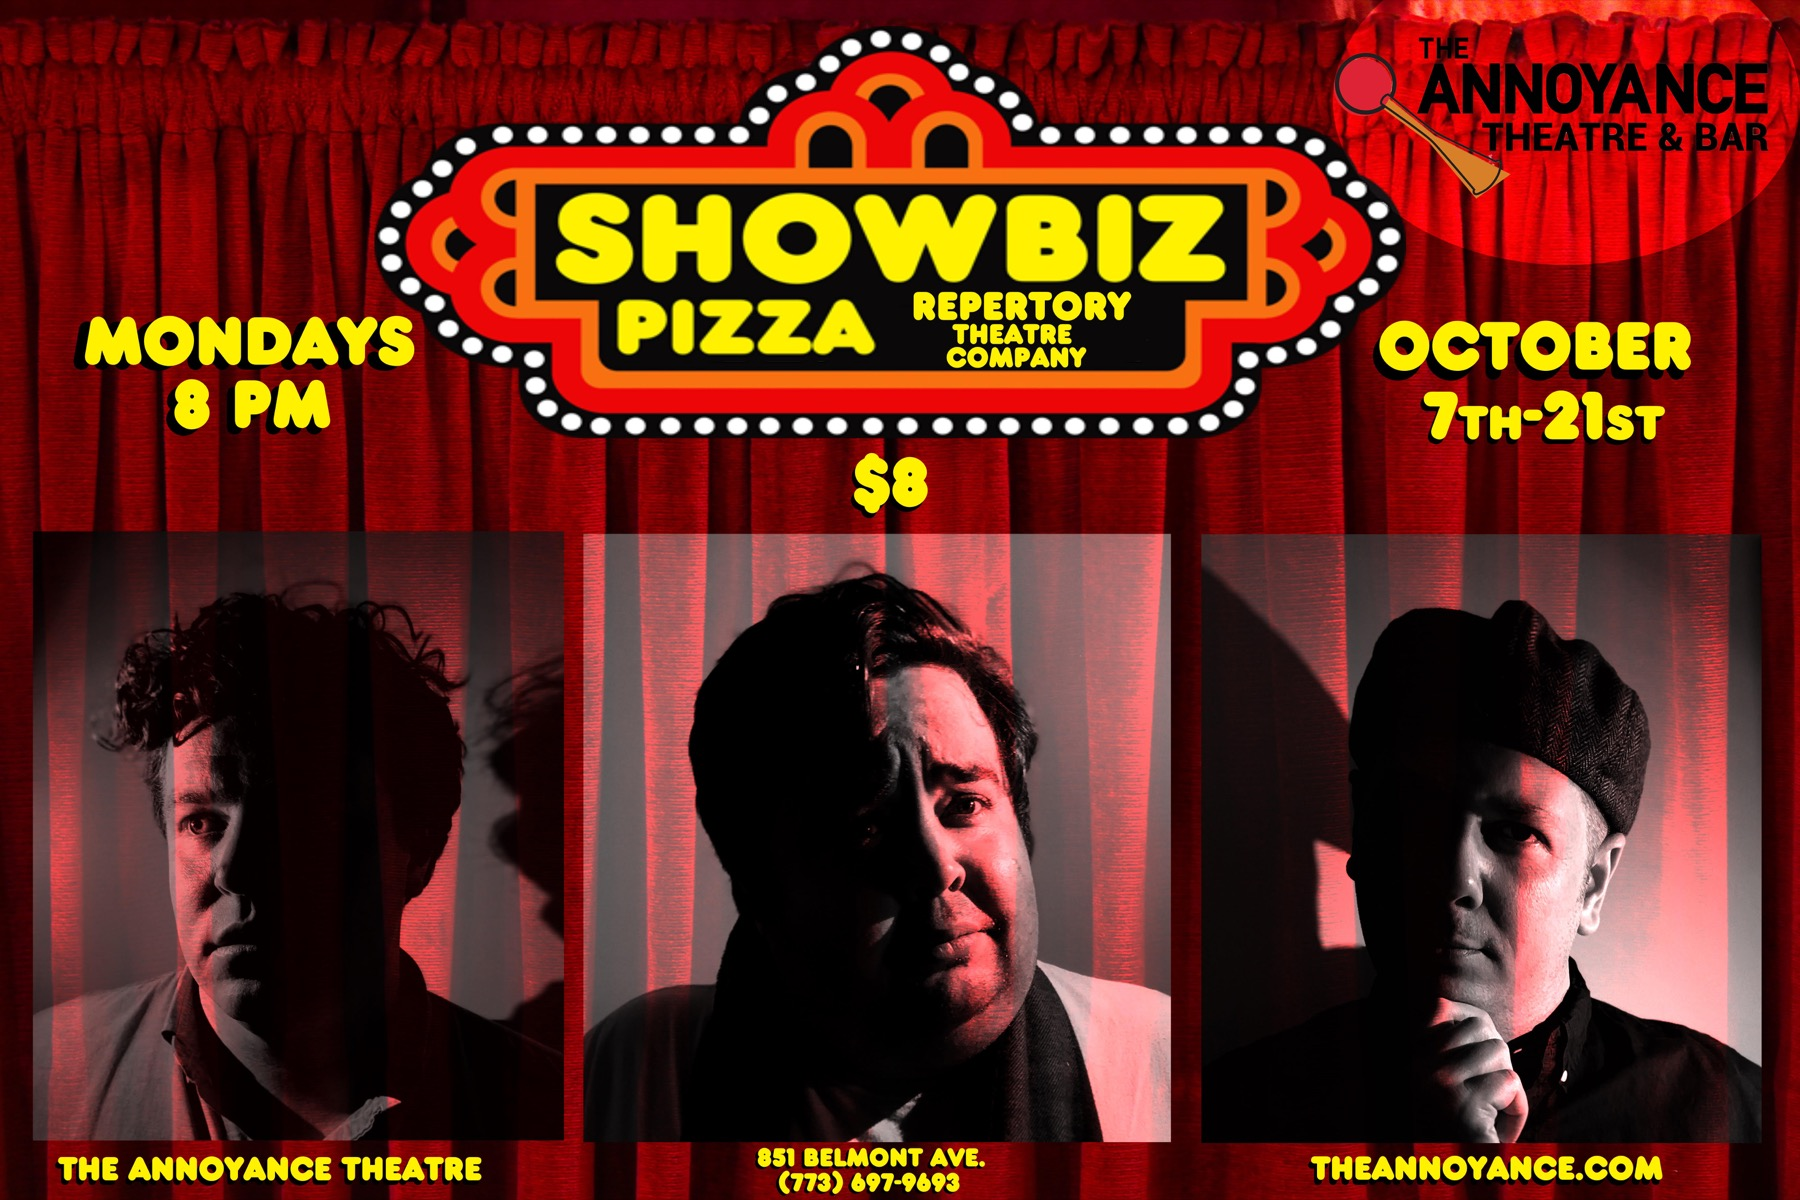 The Showbiz Pizza Repertory Theater